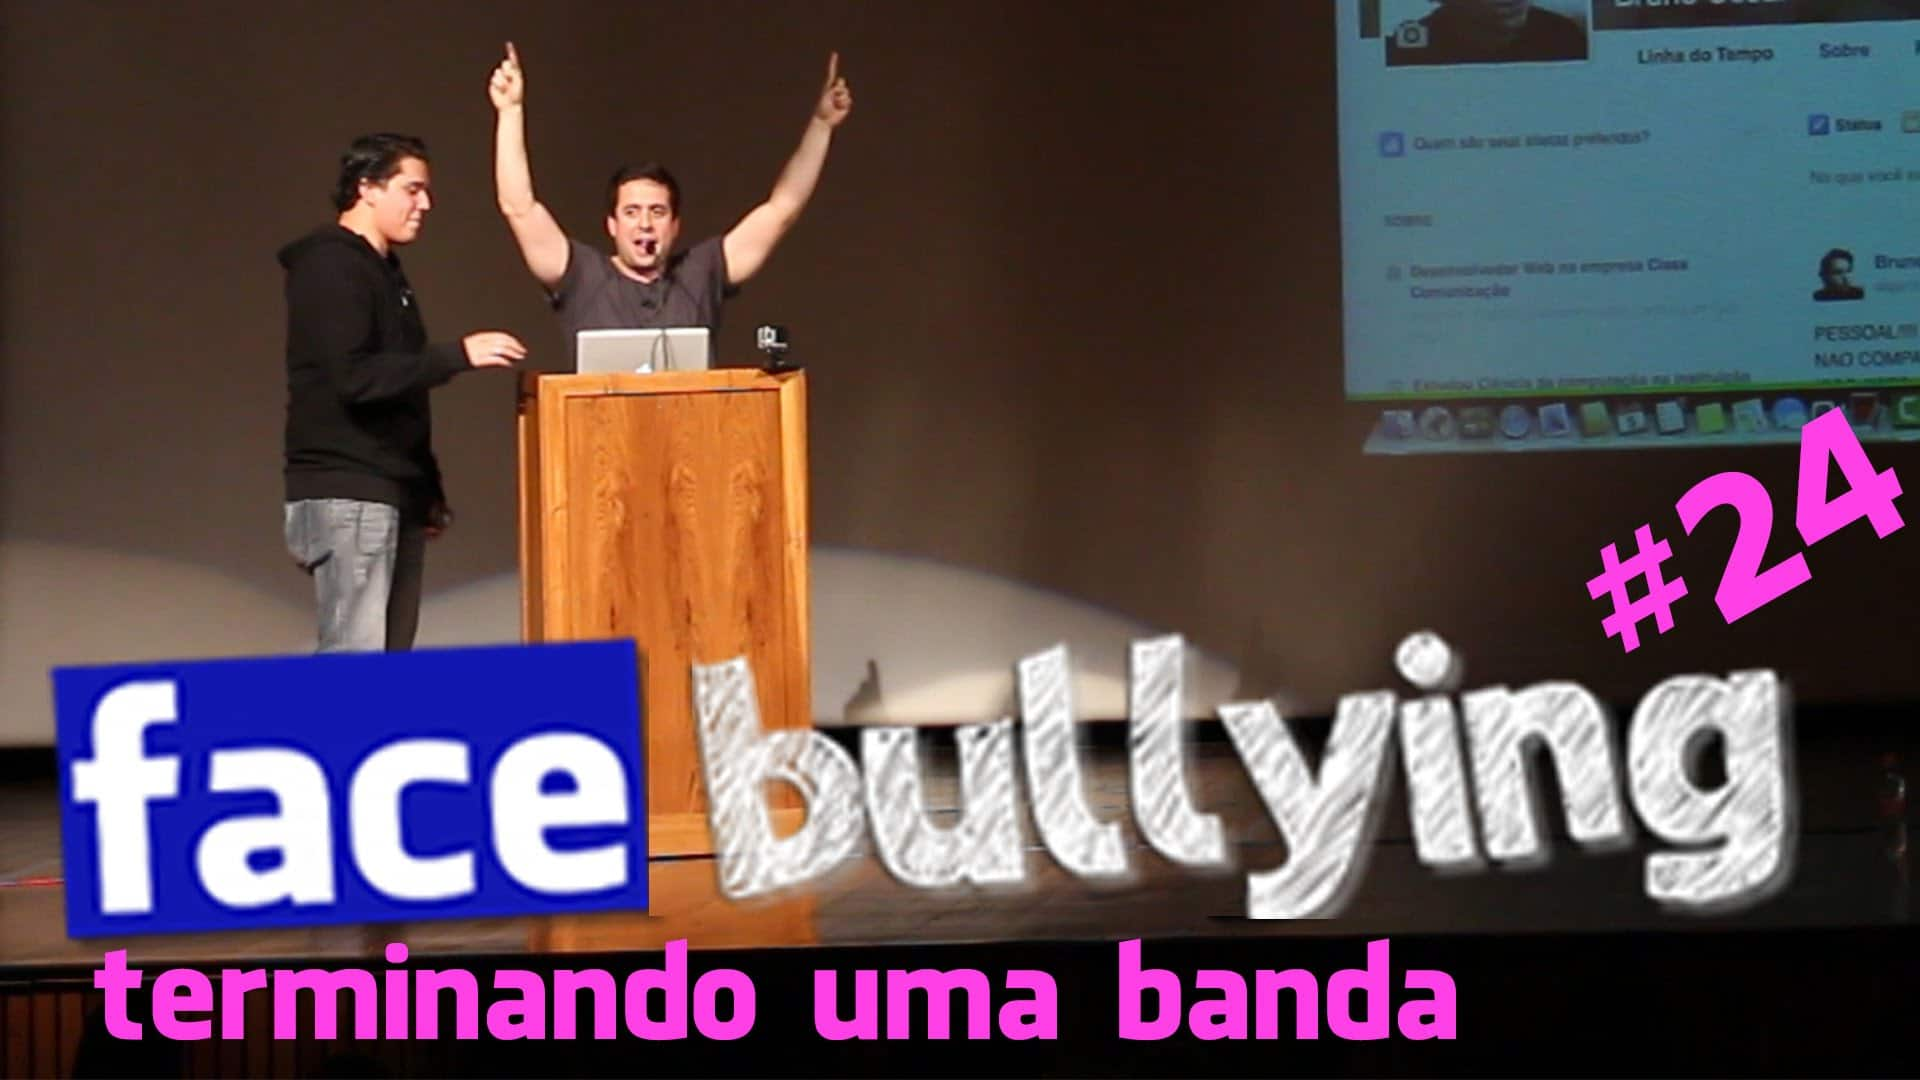 facebullying - facebullying terminando uma banda blog tediado - Facebullying – Terminando uma banda